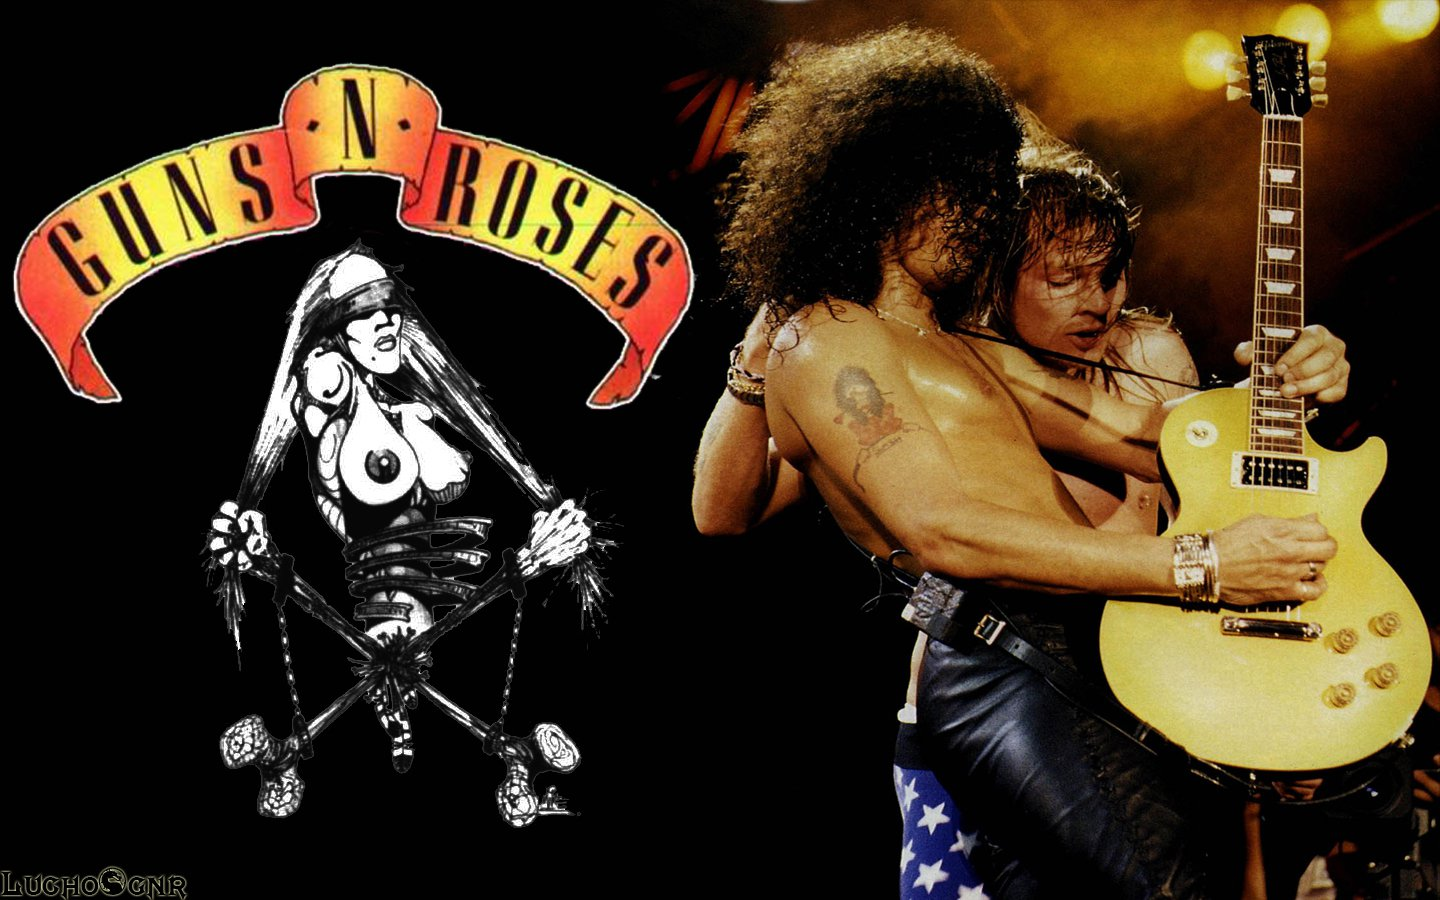 Guns n roses hd wallpaper wallpapersafari - Wallpaper guns and roses ...